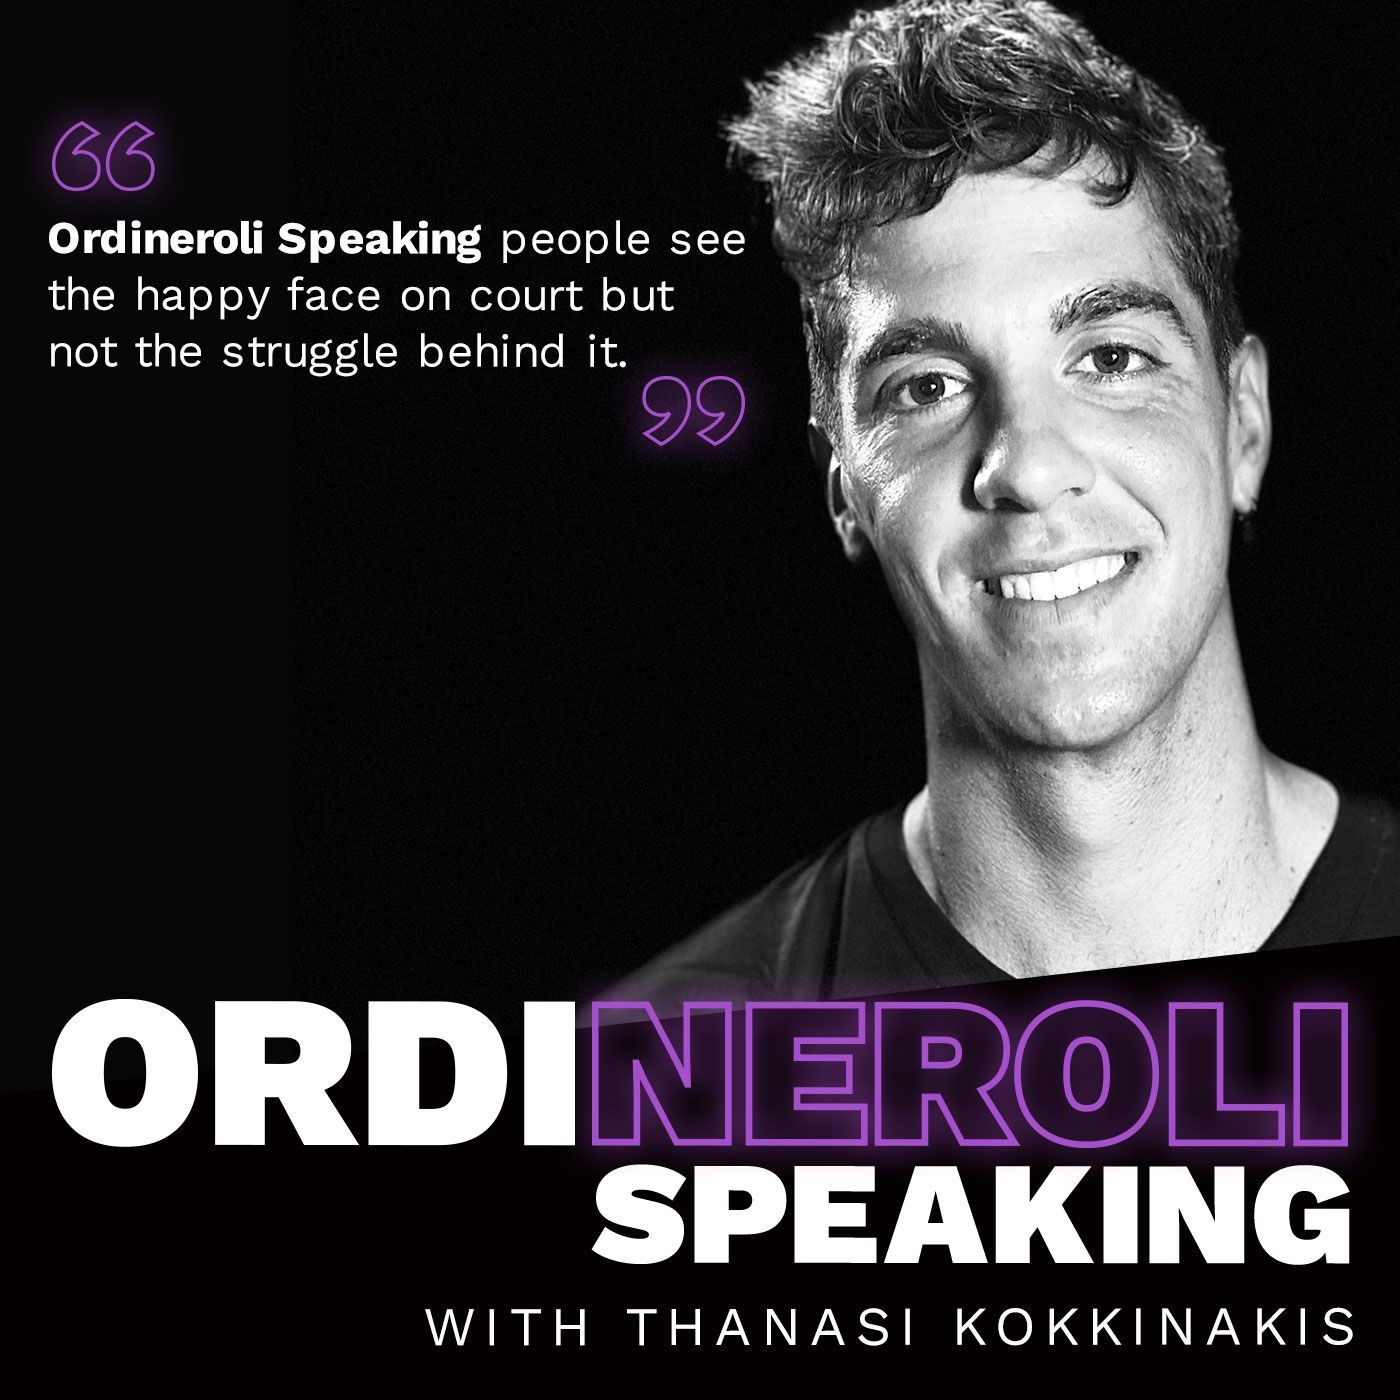 Thanasi Kokkinakis - Ordineroli Speaking